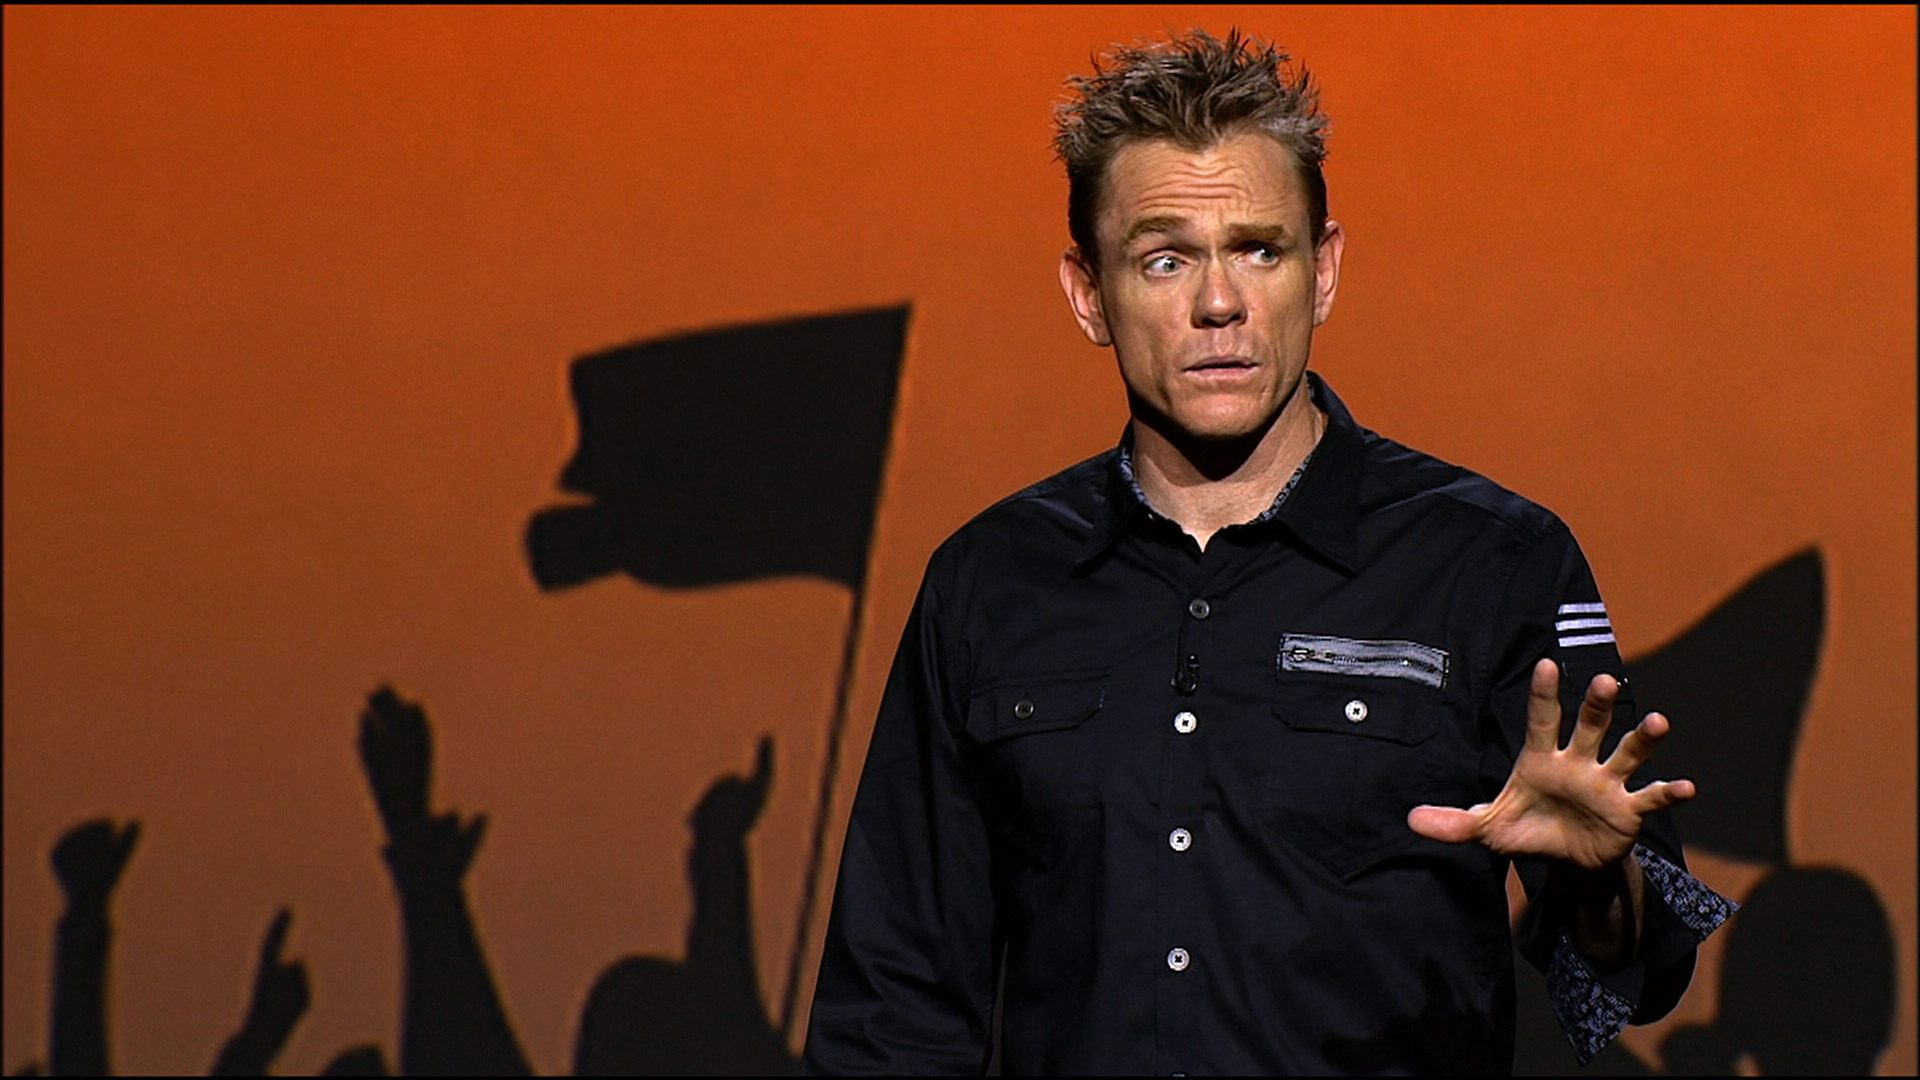 christopher titus neverlution torrent